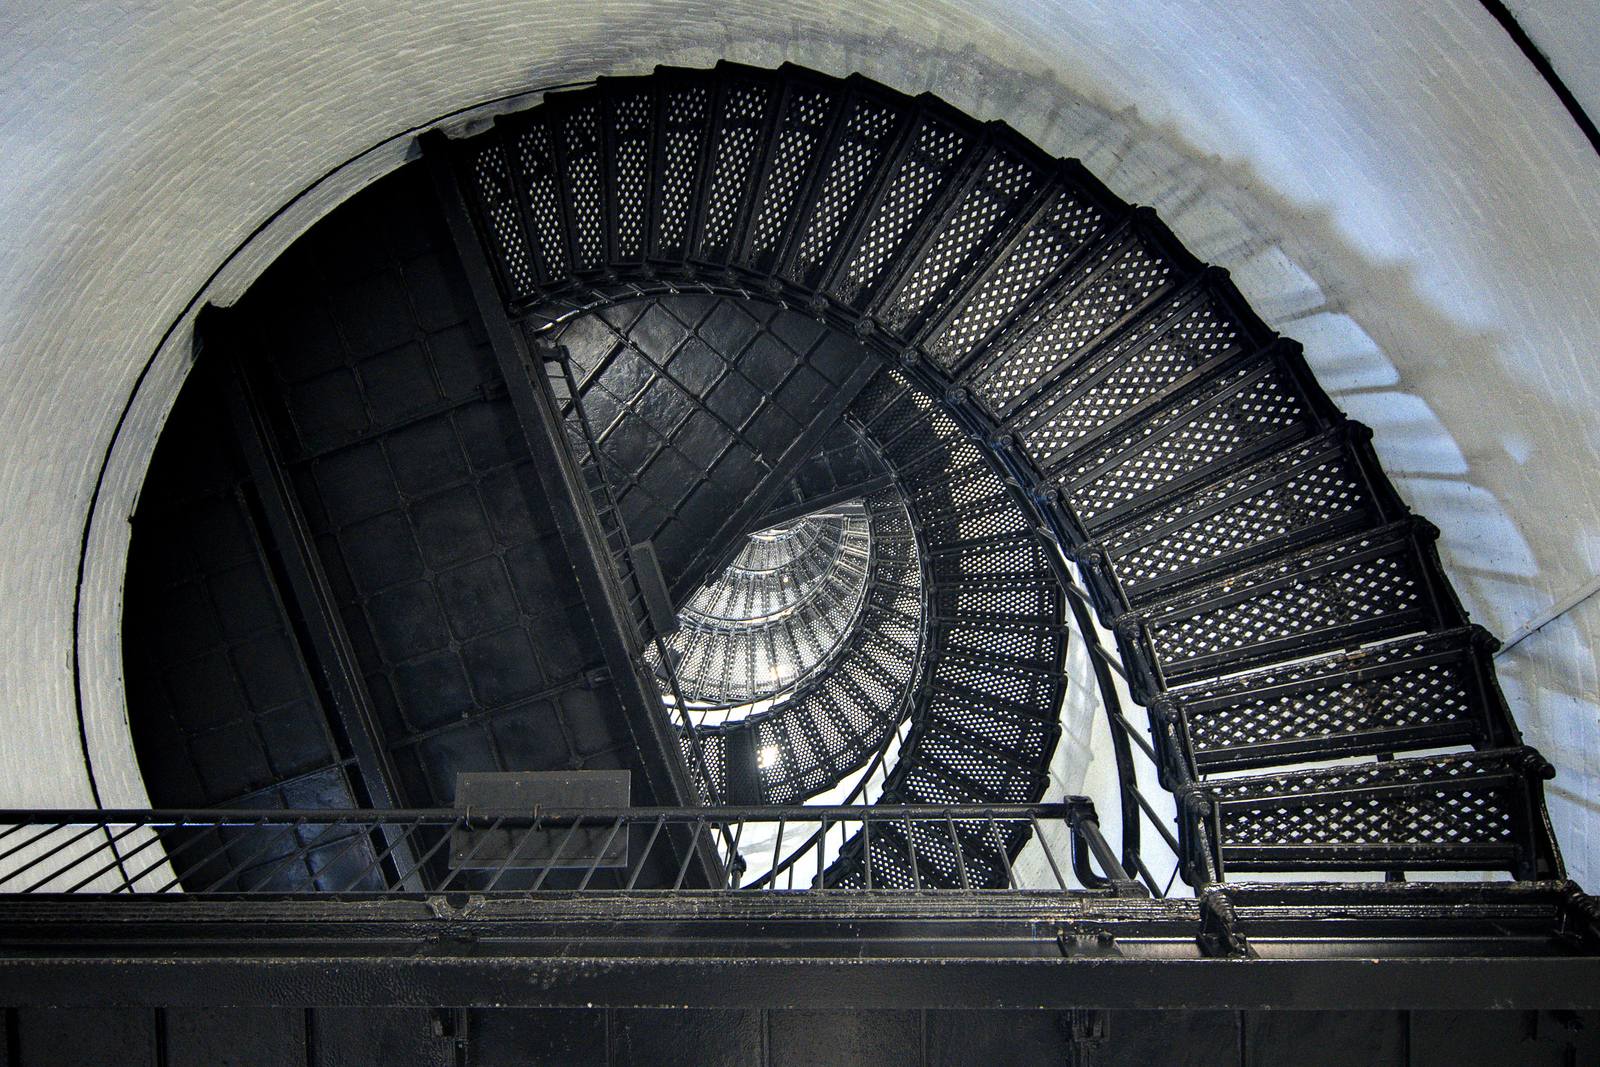 A view of the spiraling cast and wrought iron staircase inside the Hunting Island Lighthouse at Hunting Island State Park in Hunting Island, SC on Friday, February 20, 2015. Copyright 2015 Jason Barnette Completed in 1875, the 133' lighthouse is one of only two segmented cast iron lighthouses in the country. The segments are made of cast iron, lined with brick, and intended to be moved if necessary. In 1888 the lighthouse and keeper's house was moved a mile inland to its current location. Today visitors can climb the 167 steps to the circular observation platform 110' high for spectacular views of the local coastal landscapes.